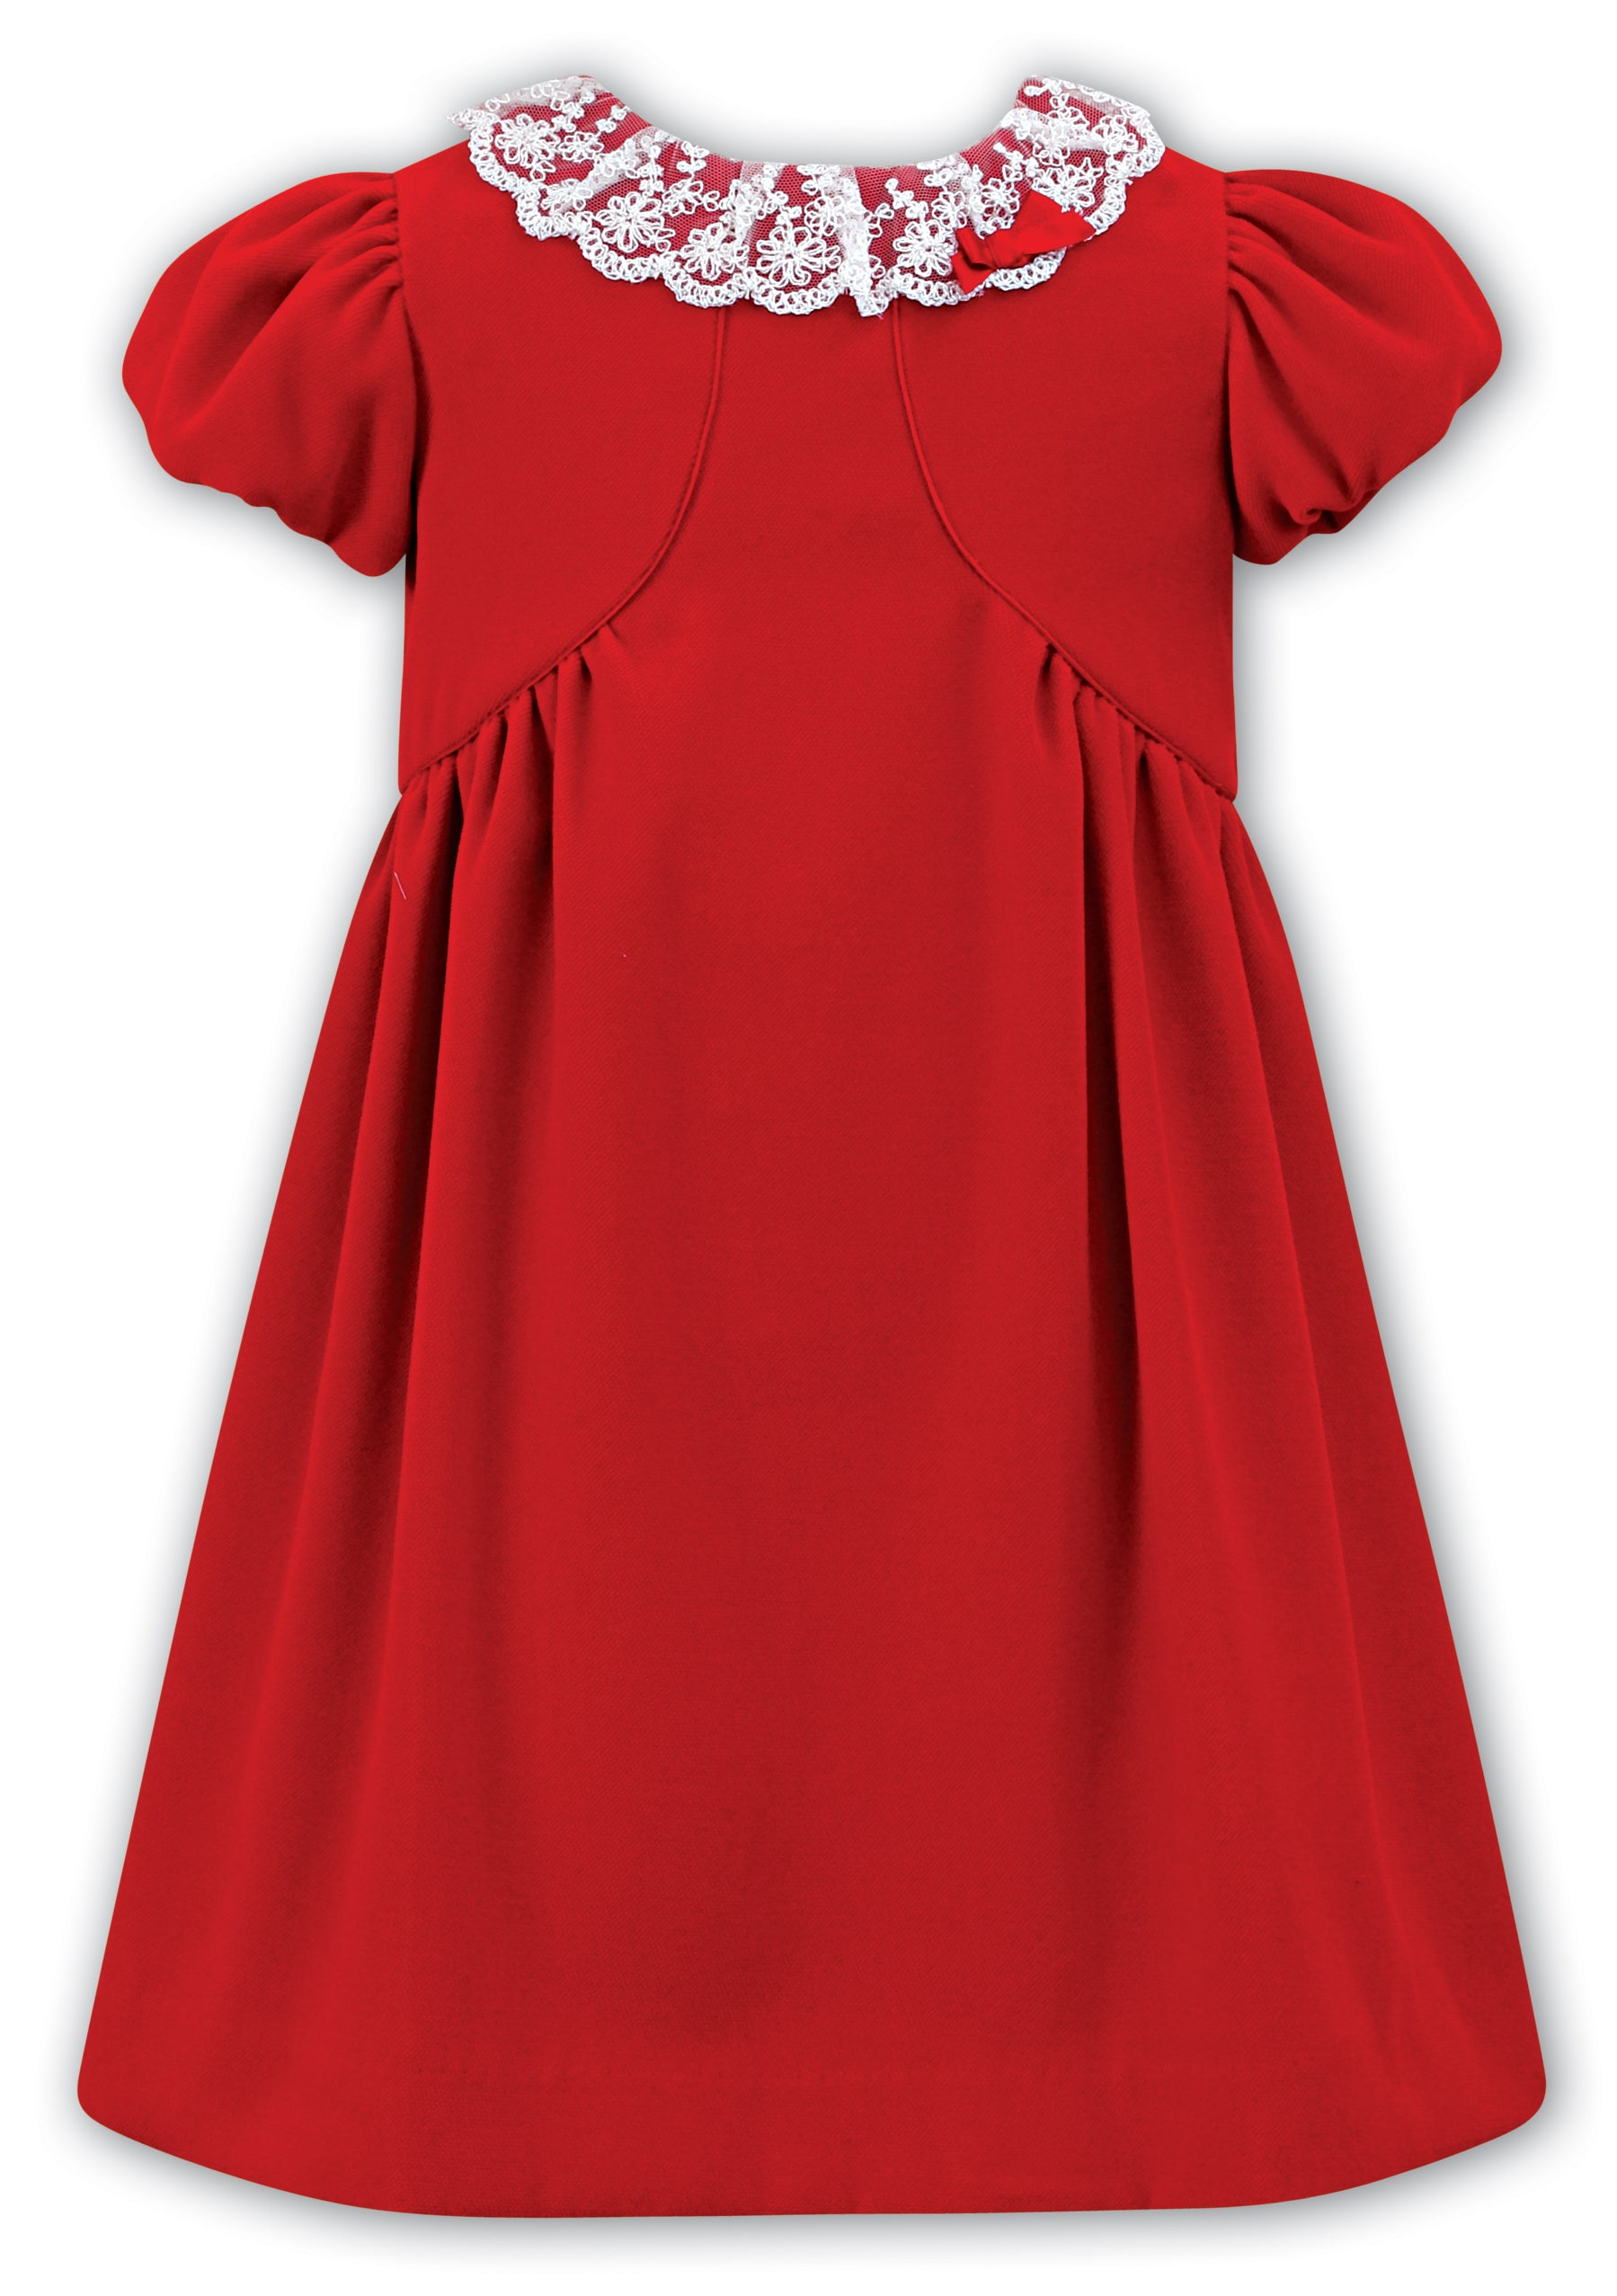 899c929c4c89 Sarah Louise lined red dress with gorgeous lace and bow detail to collar